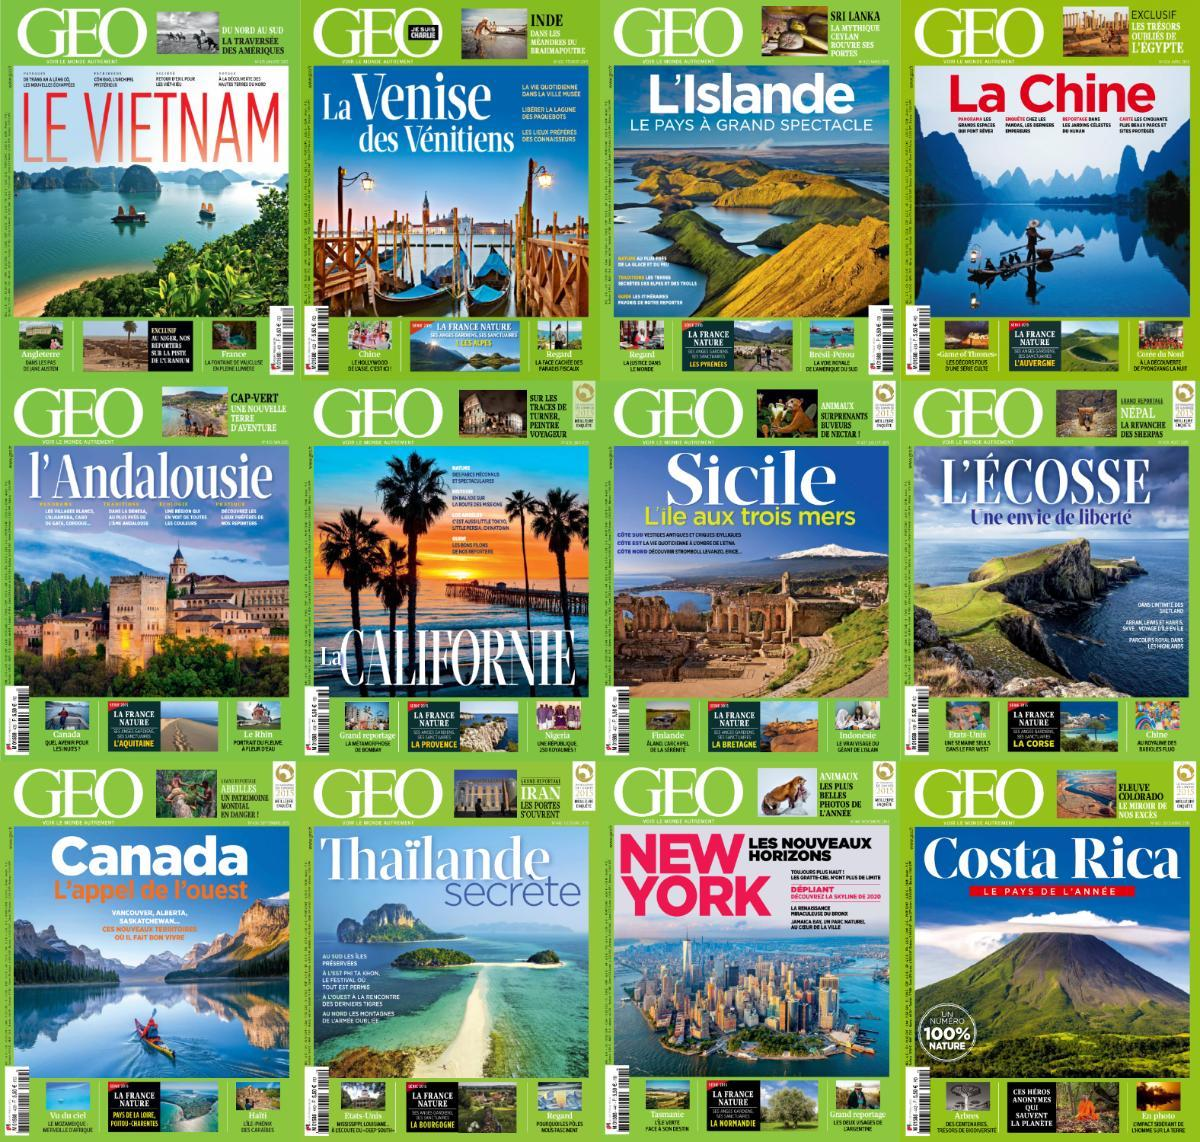 Geo France - Full Year 2015 Collection